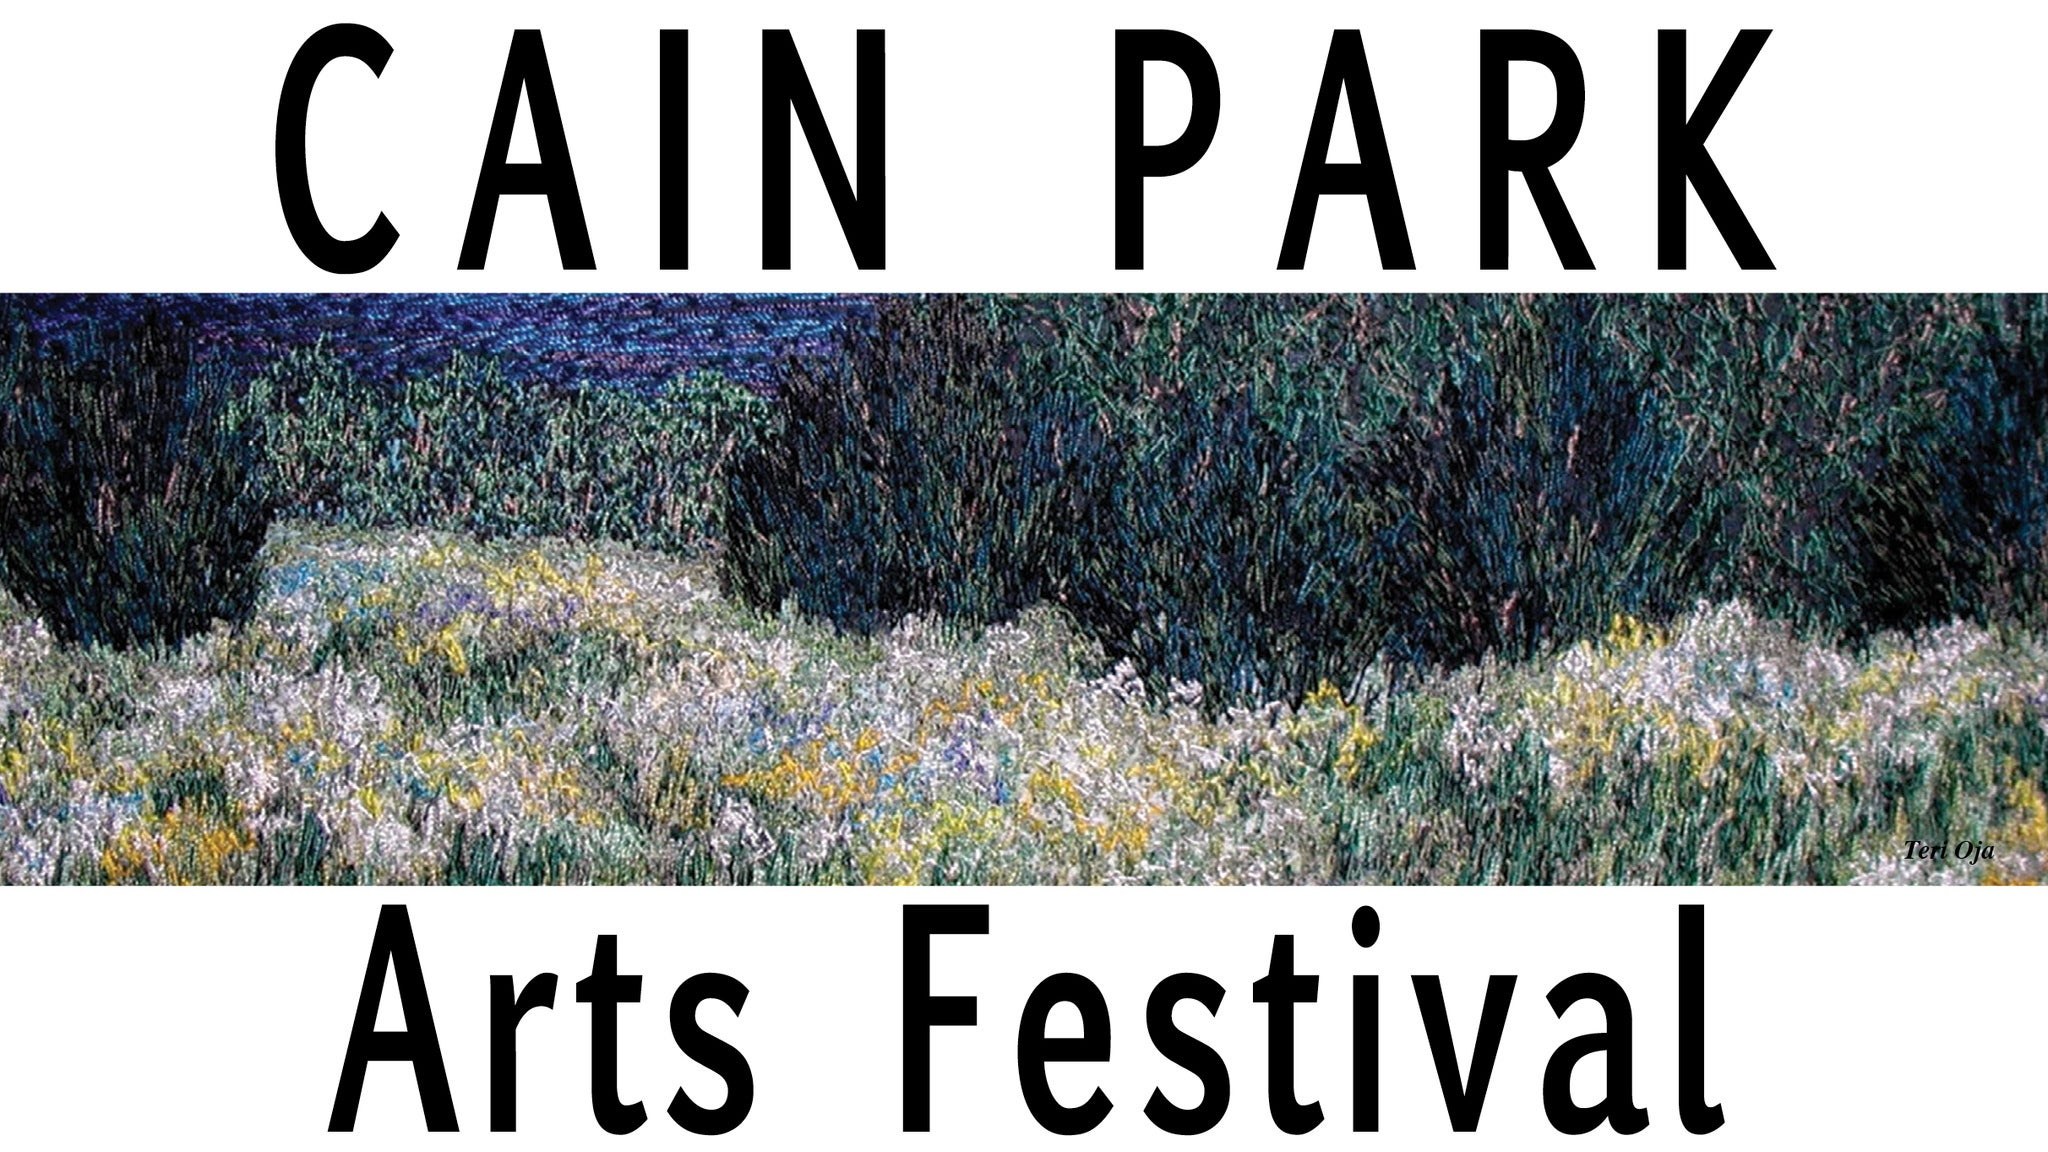 40th Anniversary of the Cain Park Arts Festival at Cain Park